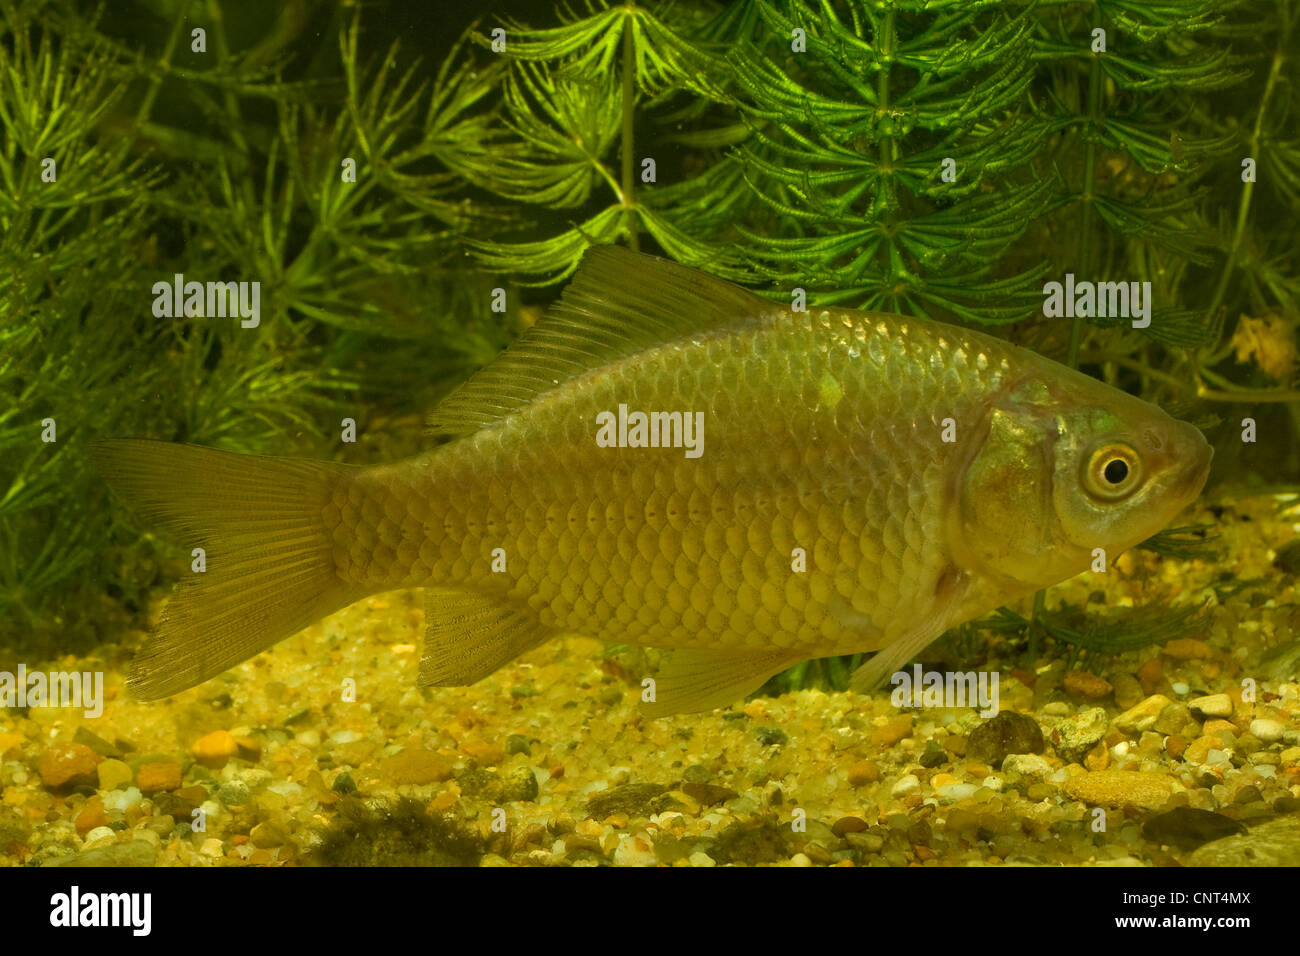 how to catch prussian carp